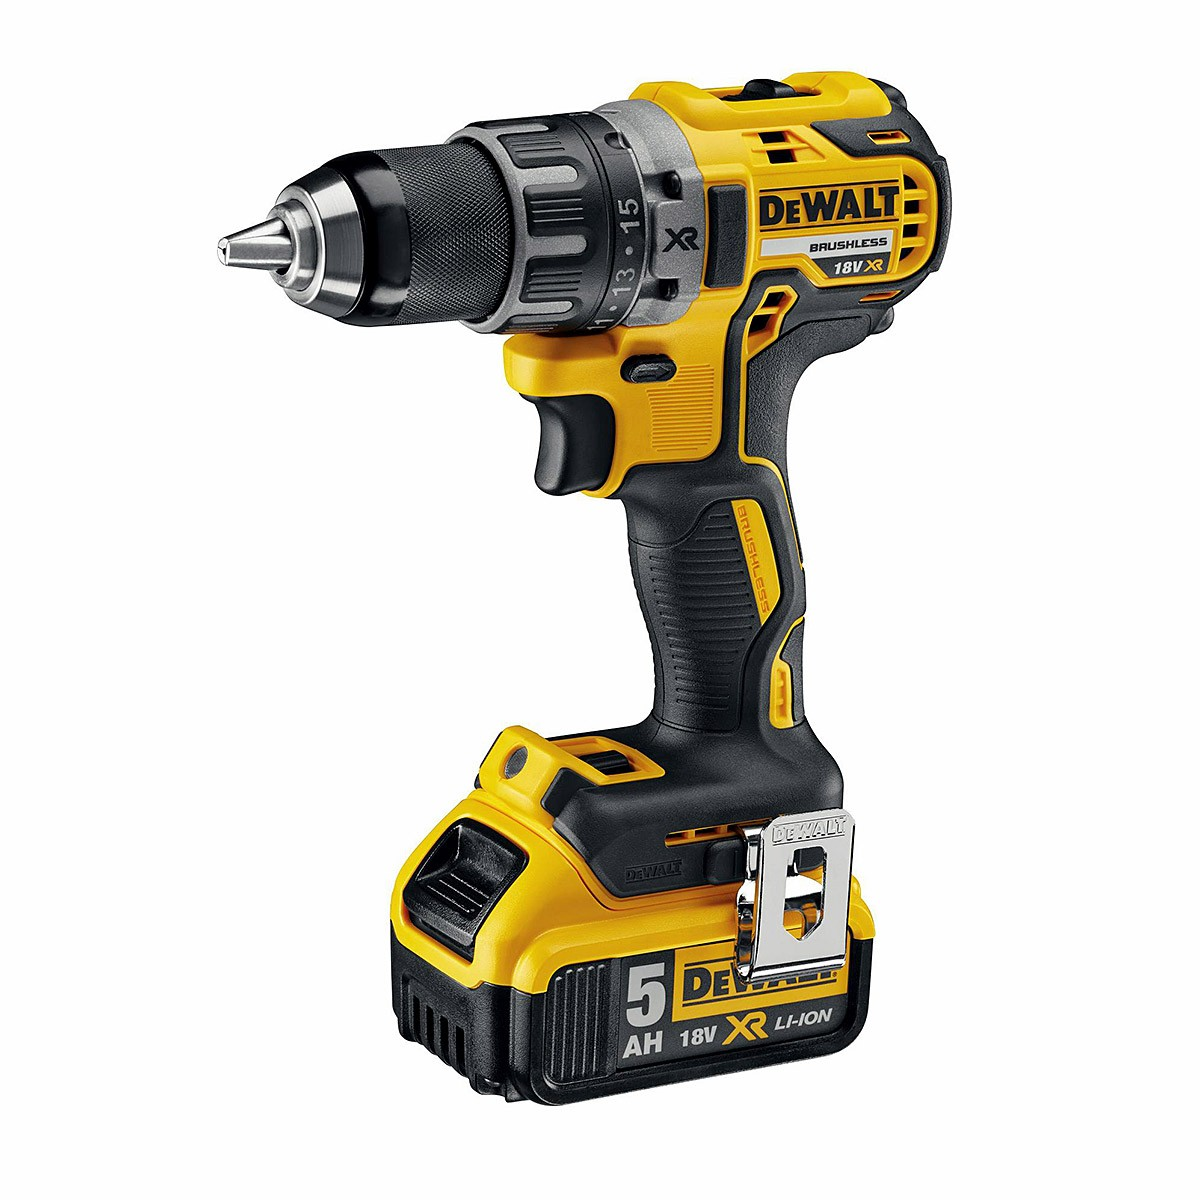 DeWalt DCD791P2 18v XR Brushless Compact Drill Driver with 2x 5.0Ah Batts in TSTAK Case